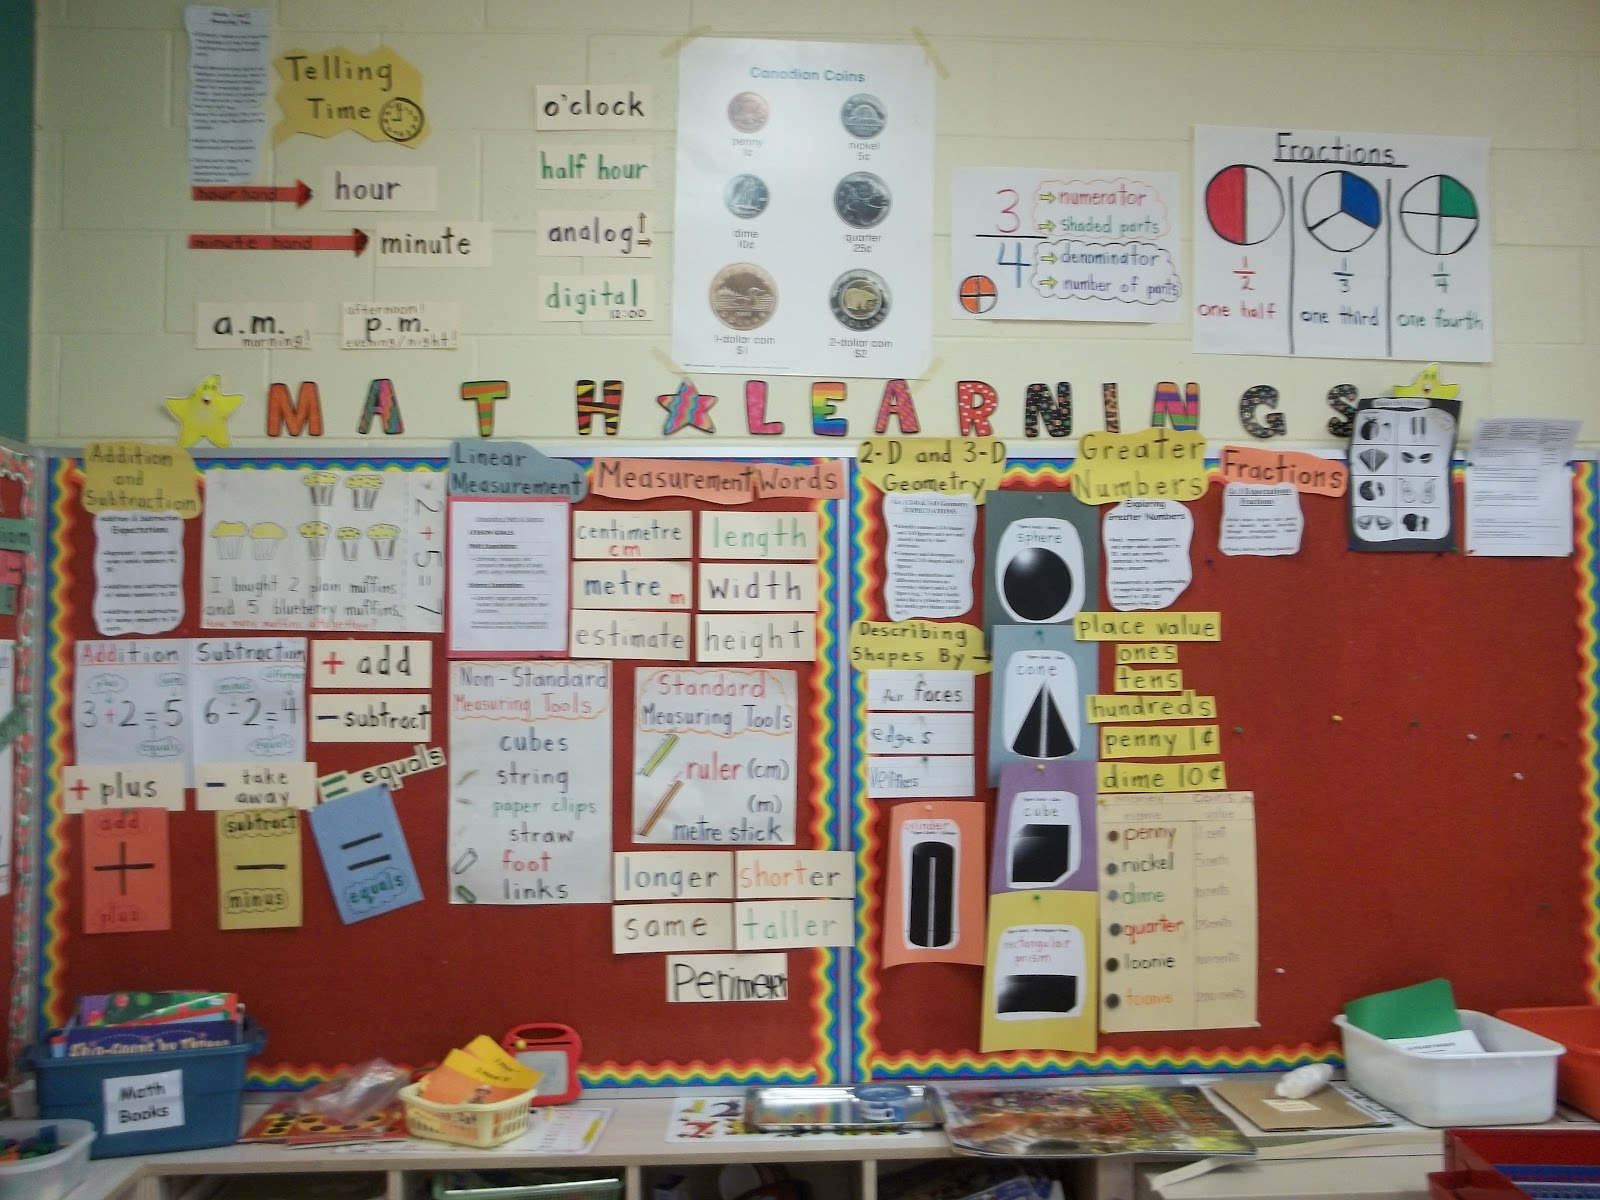 Math Focus Wall http://missgills.blogspot.com/